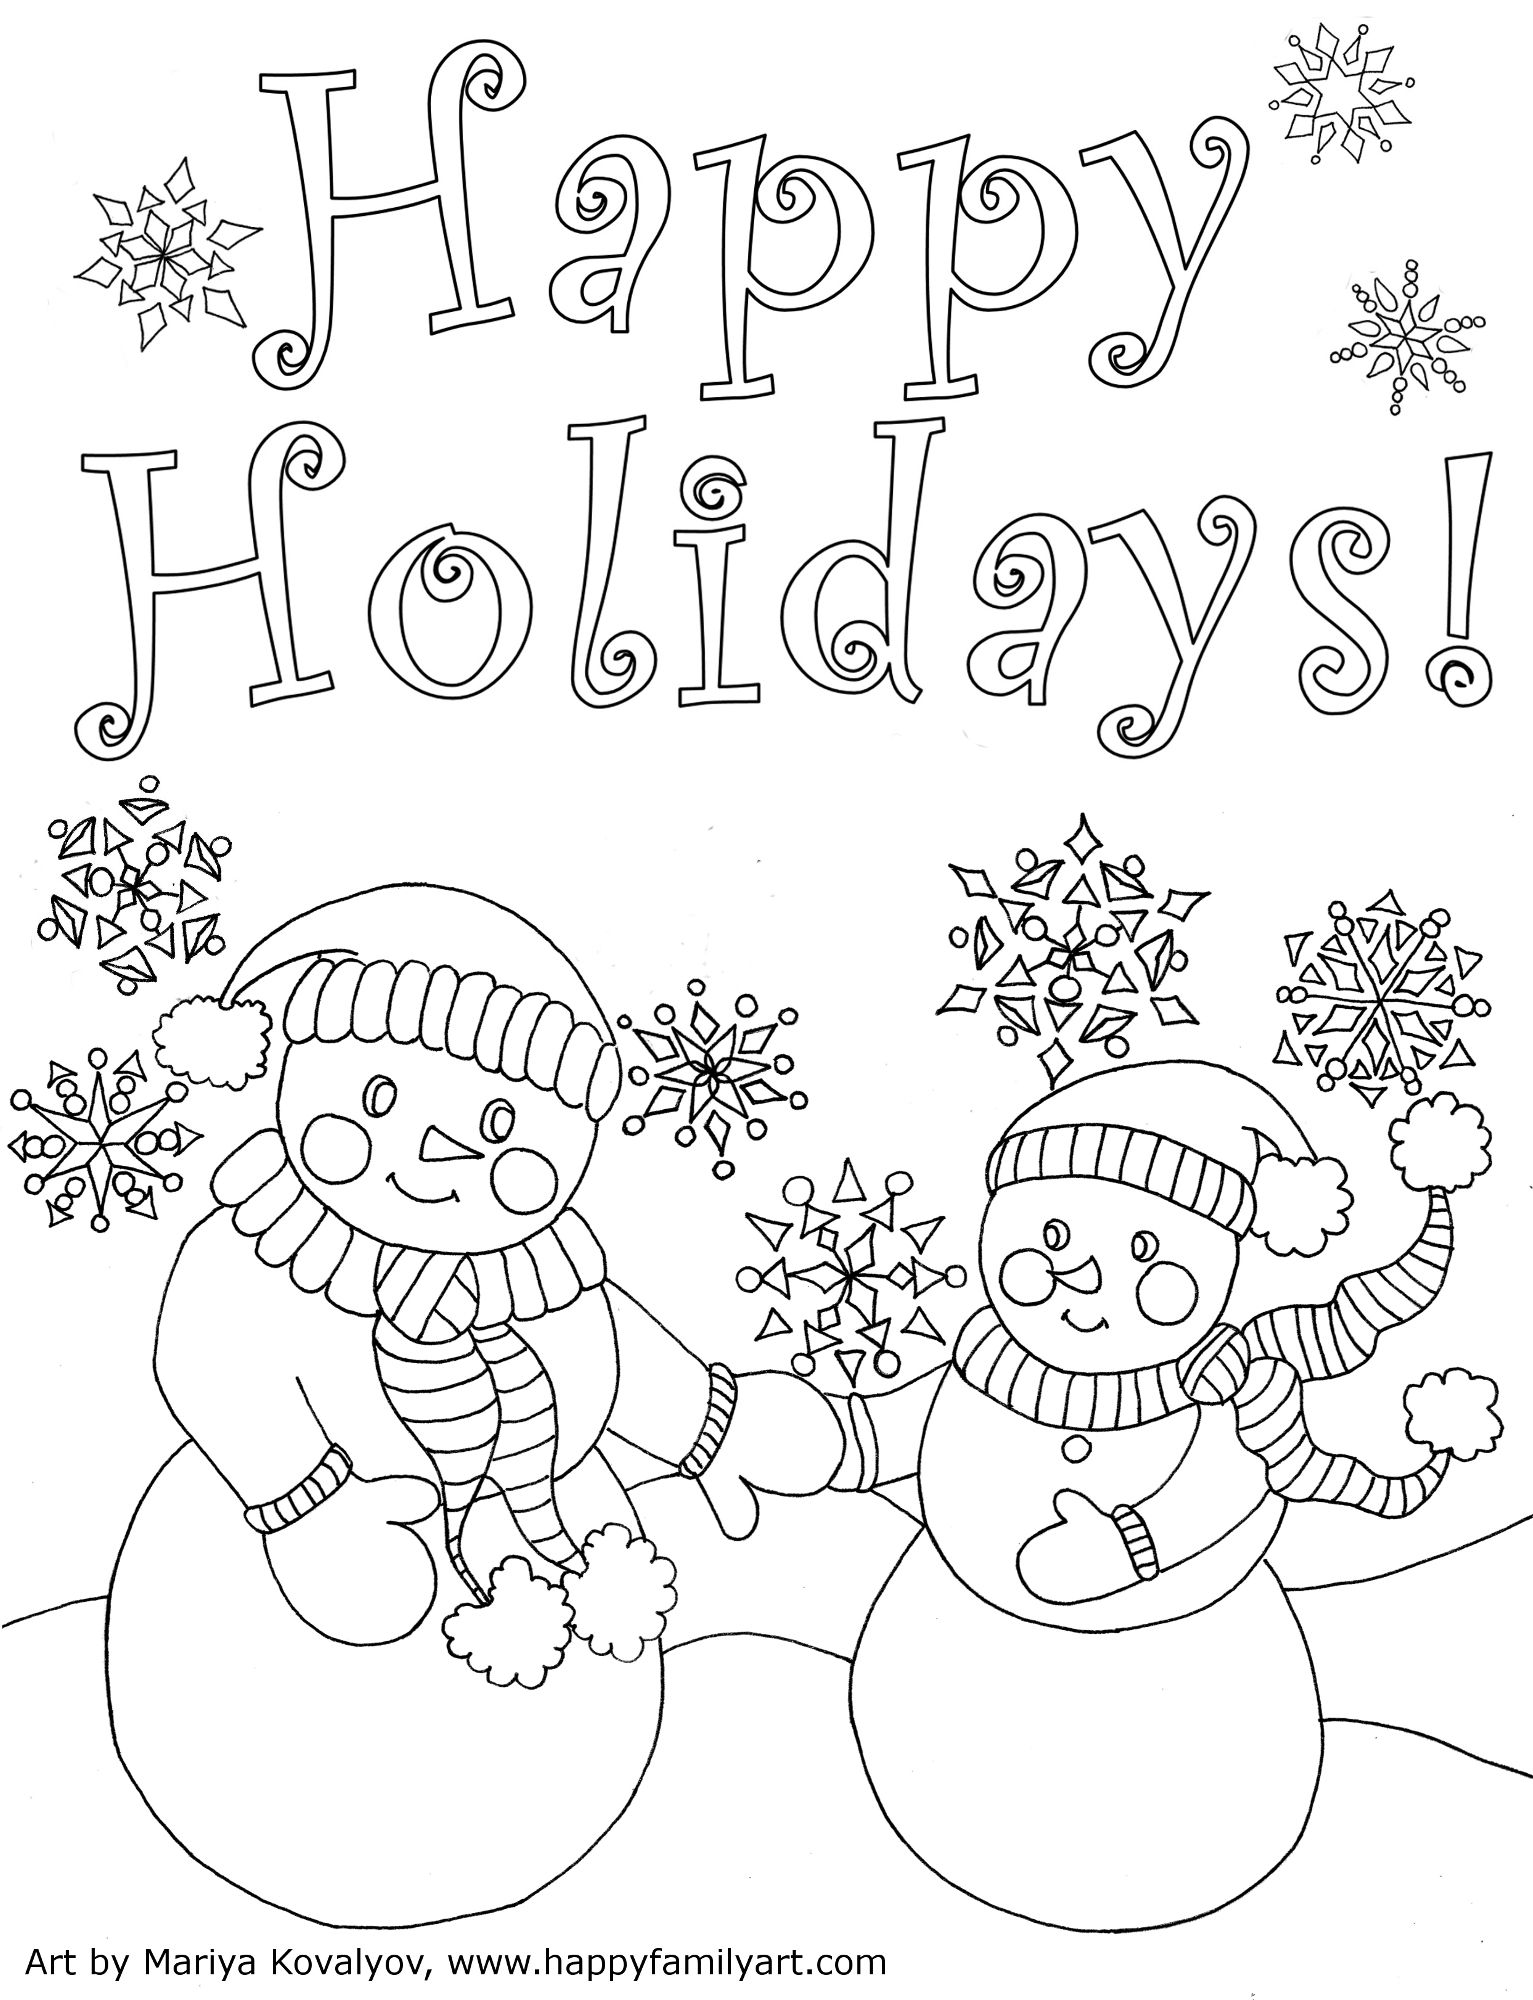 Happy Family Art Original And Fun Coloring Pages Cool Coloring Pages Printable Christmas Coloring Pages Coloring Pages Inspirational [ 2000 x 1533 Pixel ]